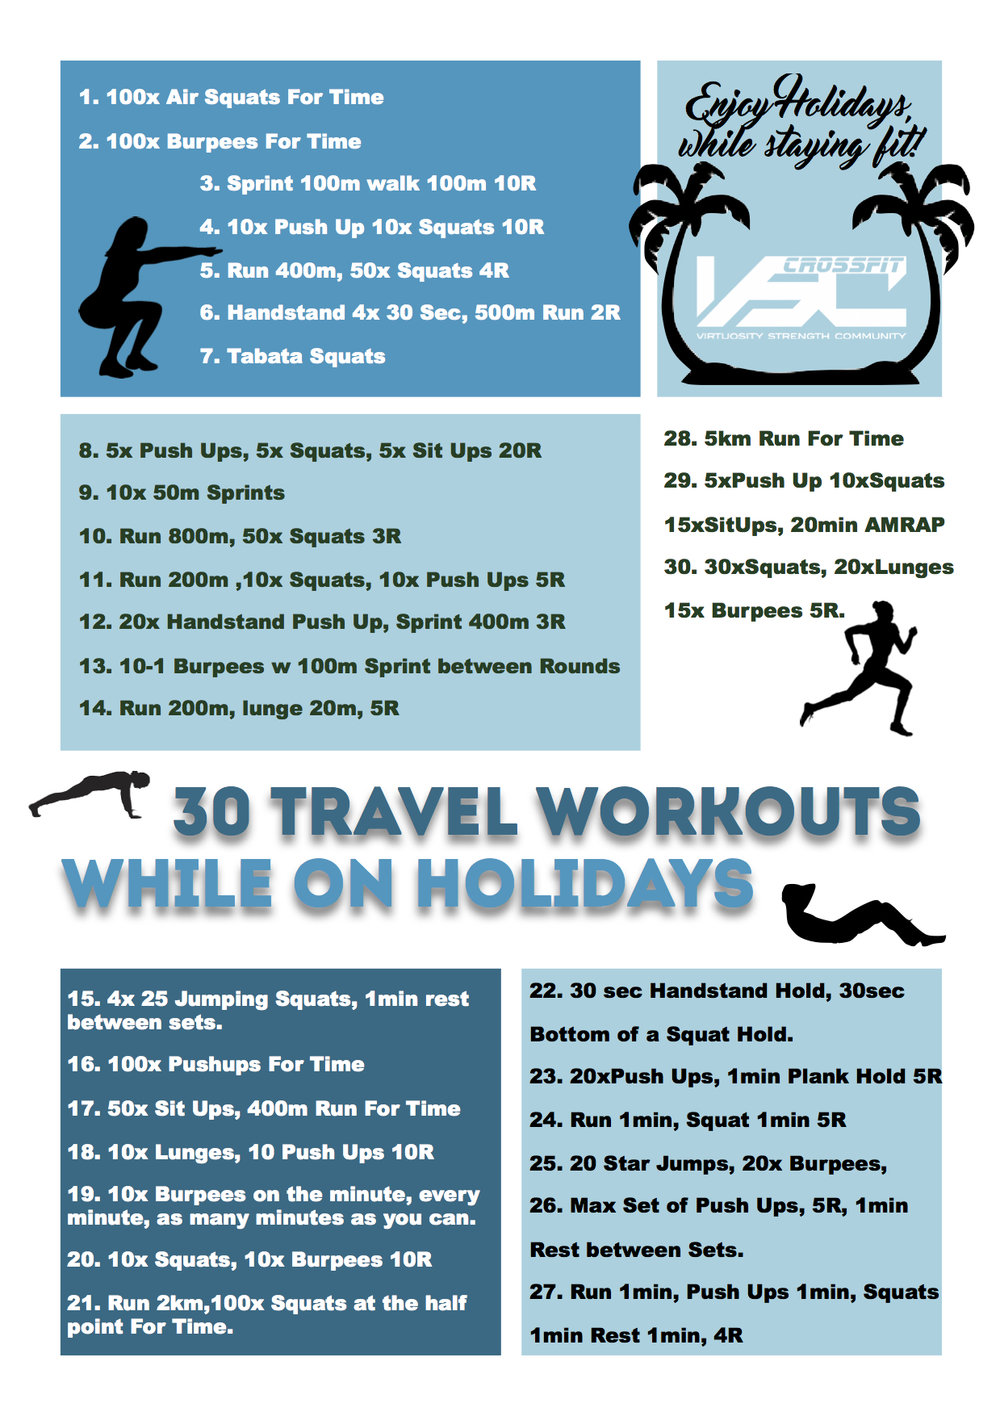 30 workouts.jpg